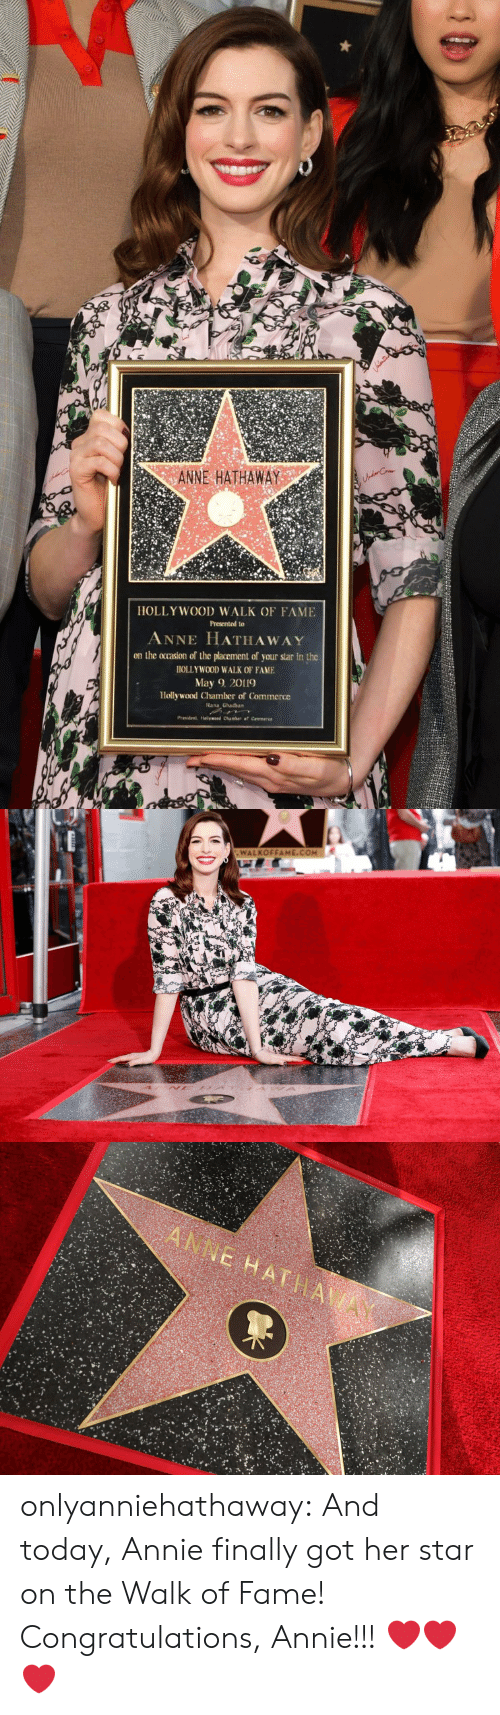 Anne Hathaway: ANNE HATHAWAY  HOLLY WOOD WALK OF FAME  Presented to  ANNE HATHAWAY  on the ocrasion of the placement of your star in the  HOLLYWOOD WALK OF FAME  May 2019  Hollywood Chamber of Commerce  ana Ghadban   WALKOFFAME.COM onlyanniehathaway:  And today, Annie finally got her star on the Walk of Fame! Congratulations, Annie!!!  ❤️❤️❤️